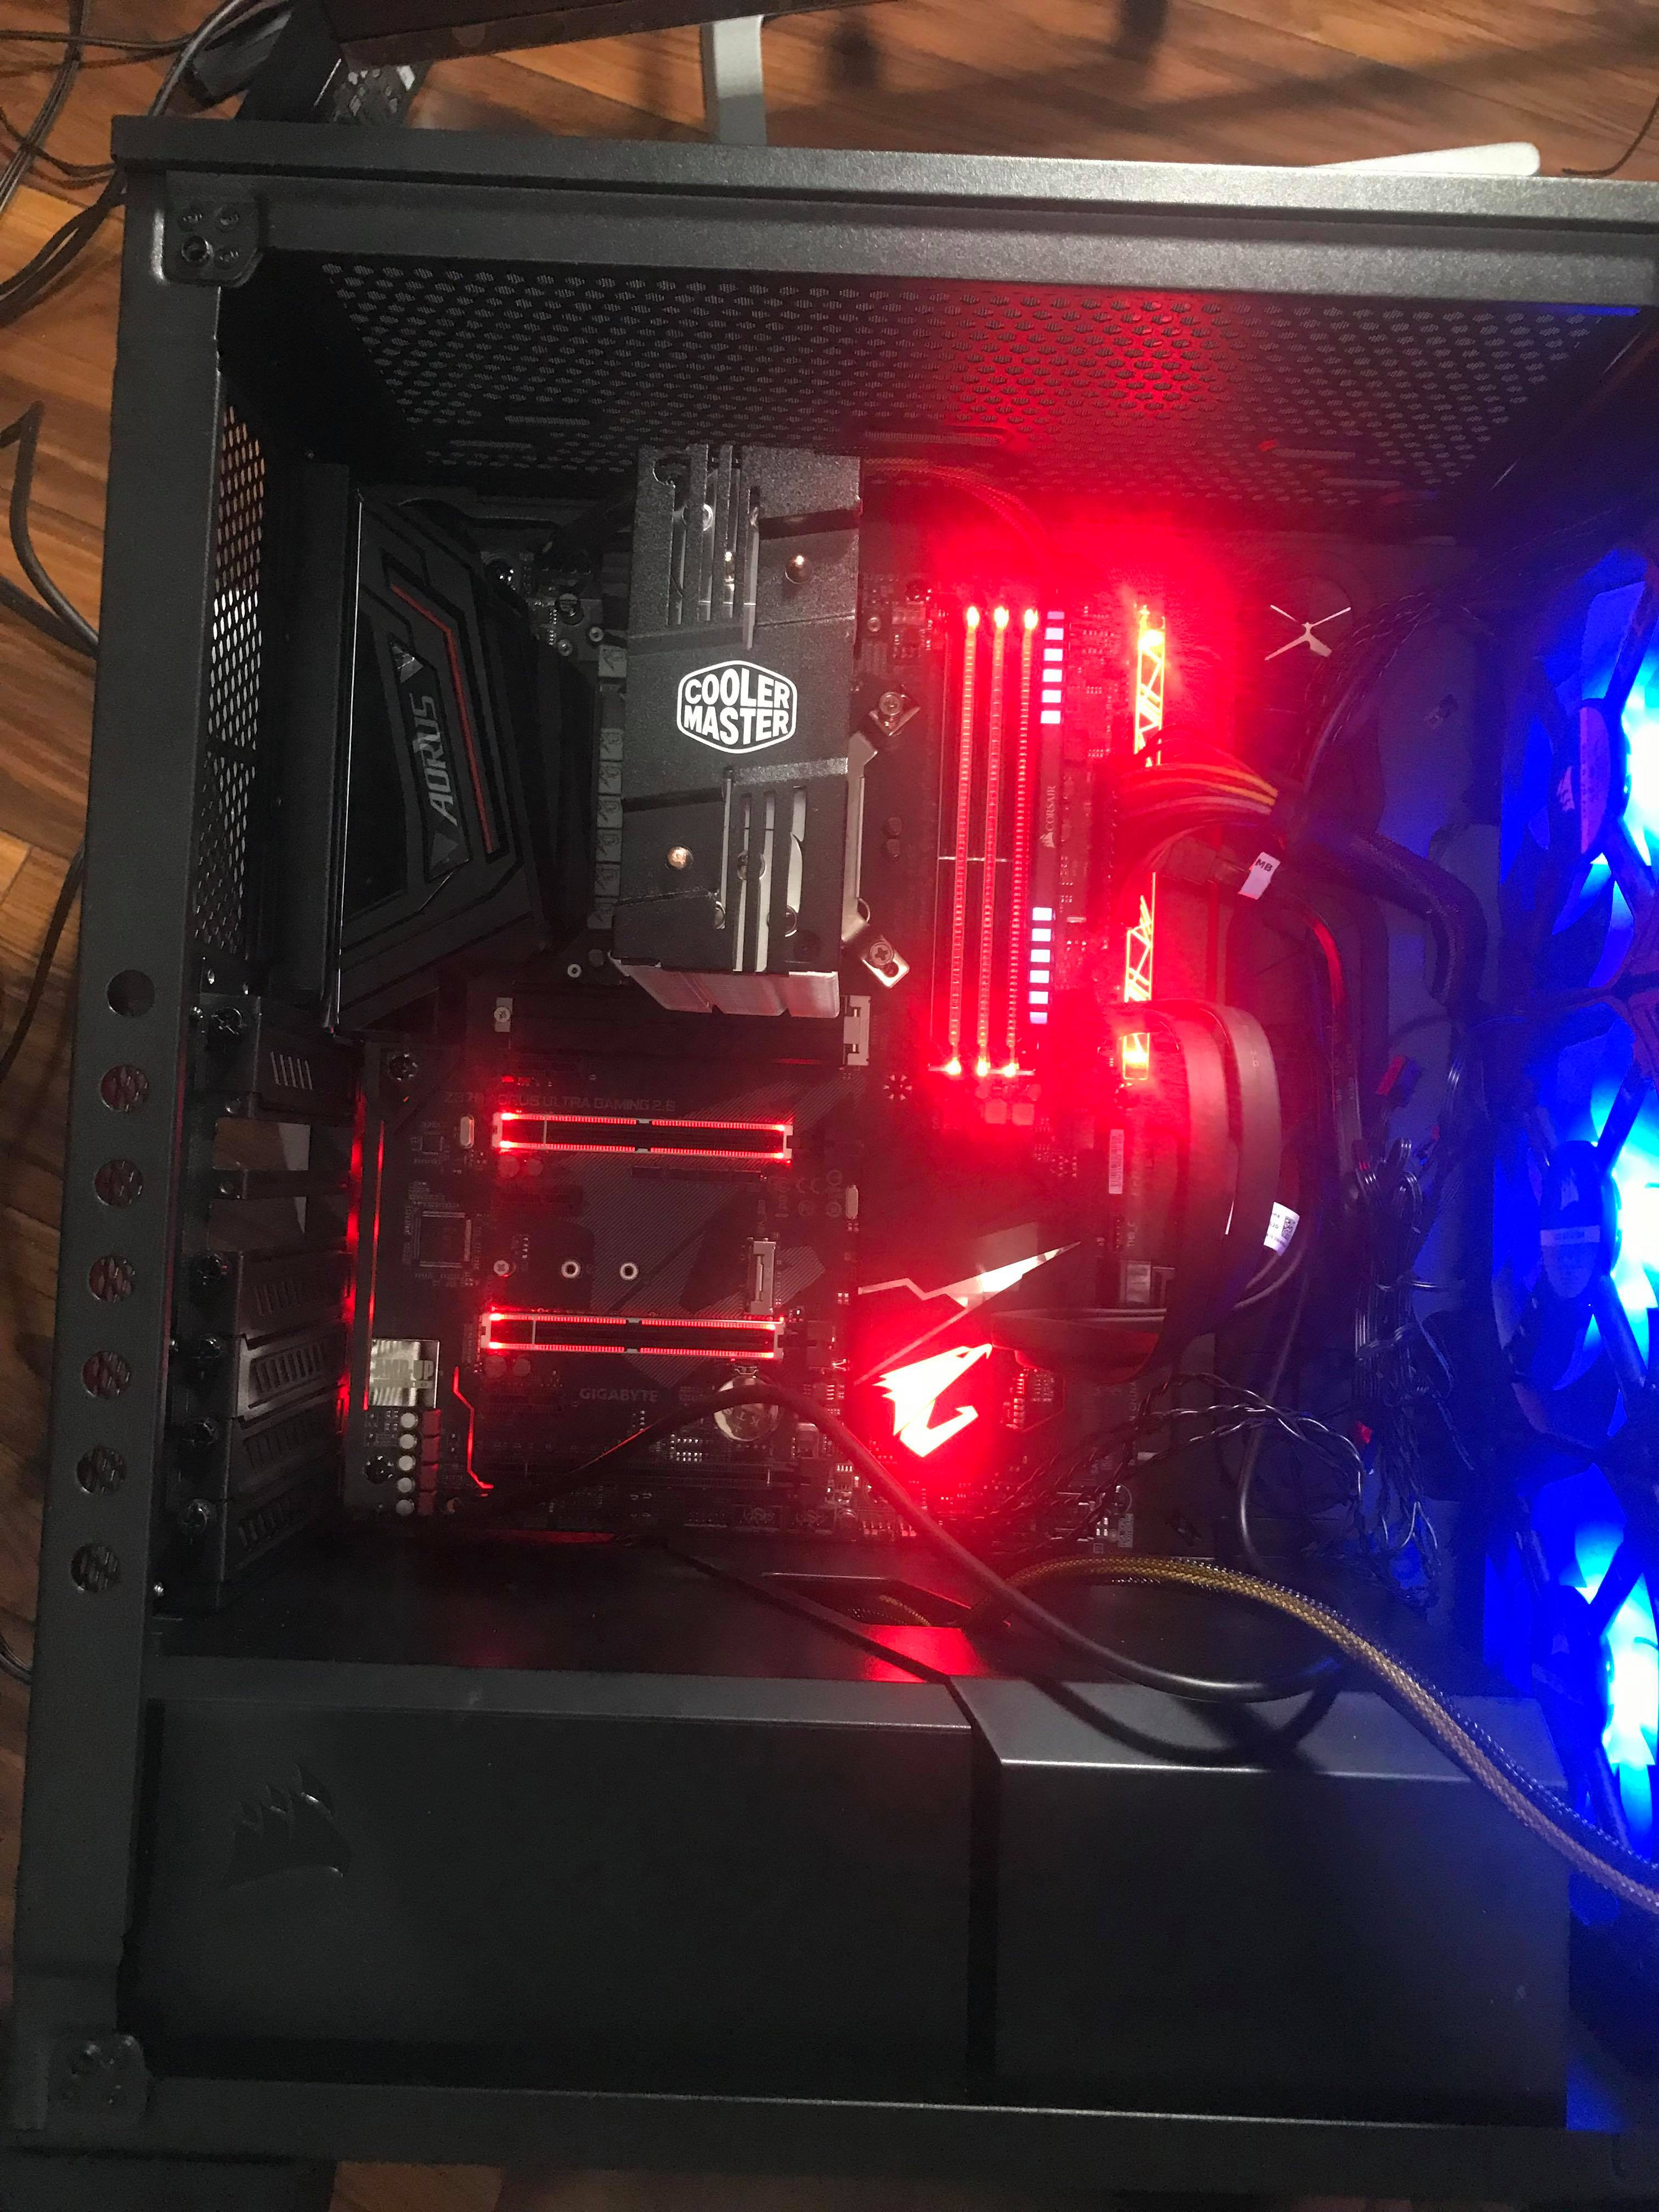 New PC builder not turning on, all red light z370 aorus ultra gaming